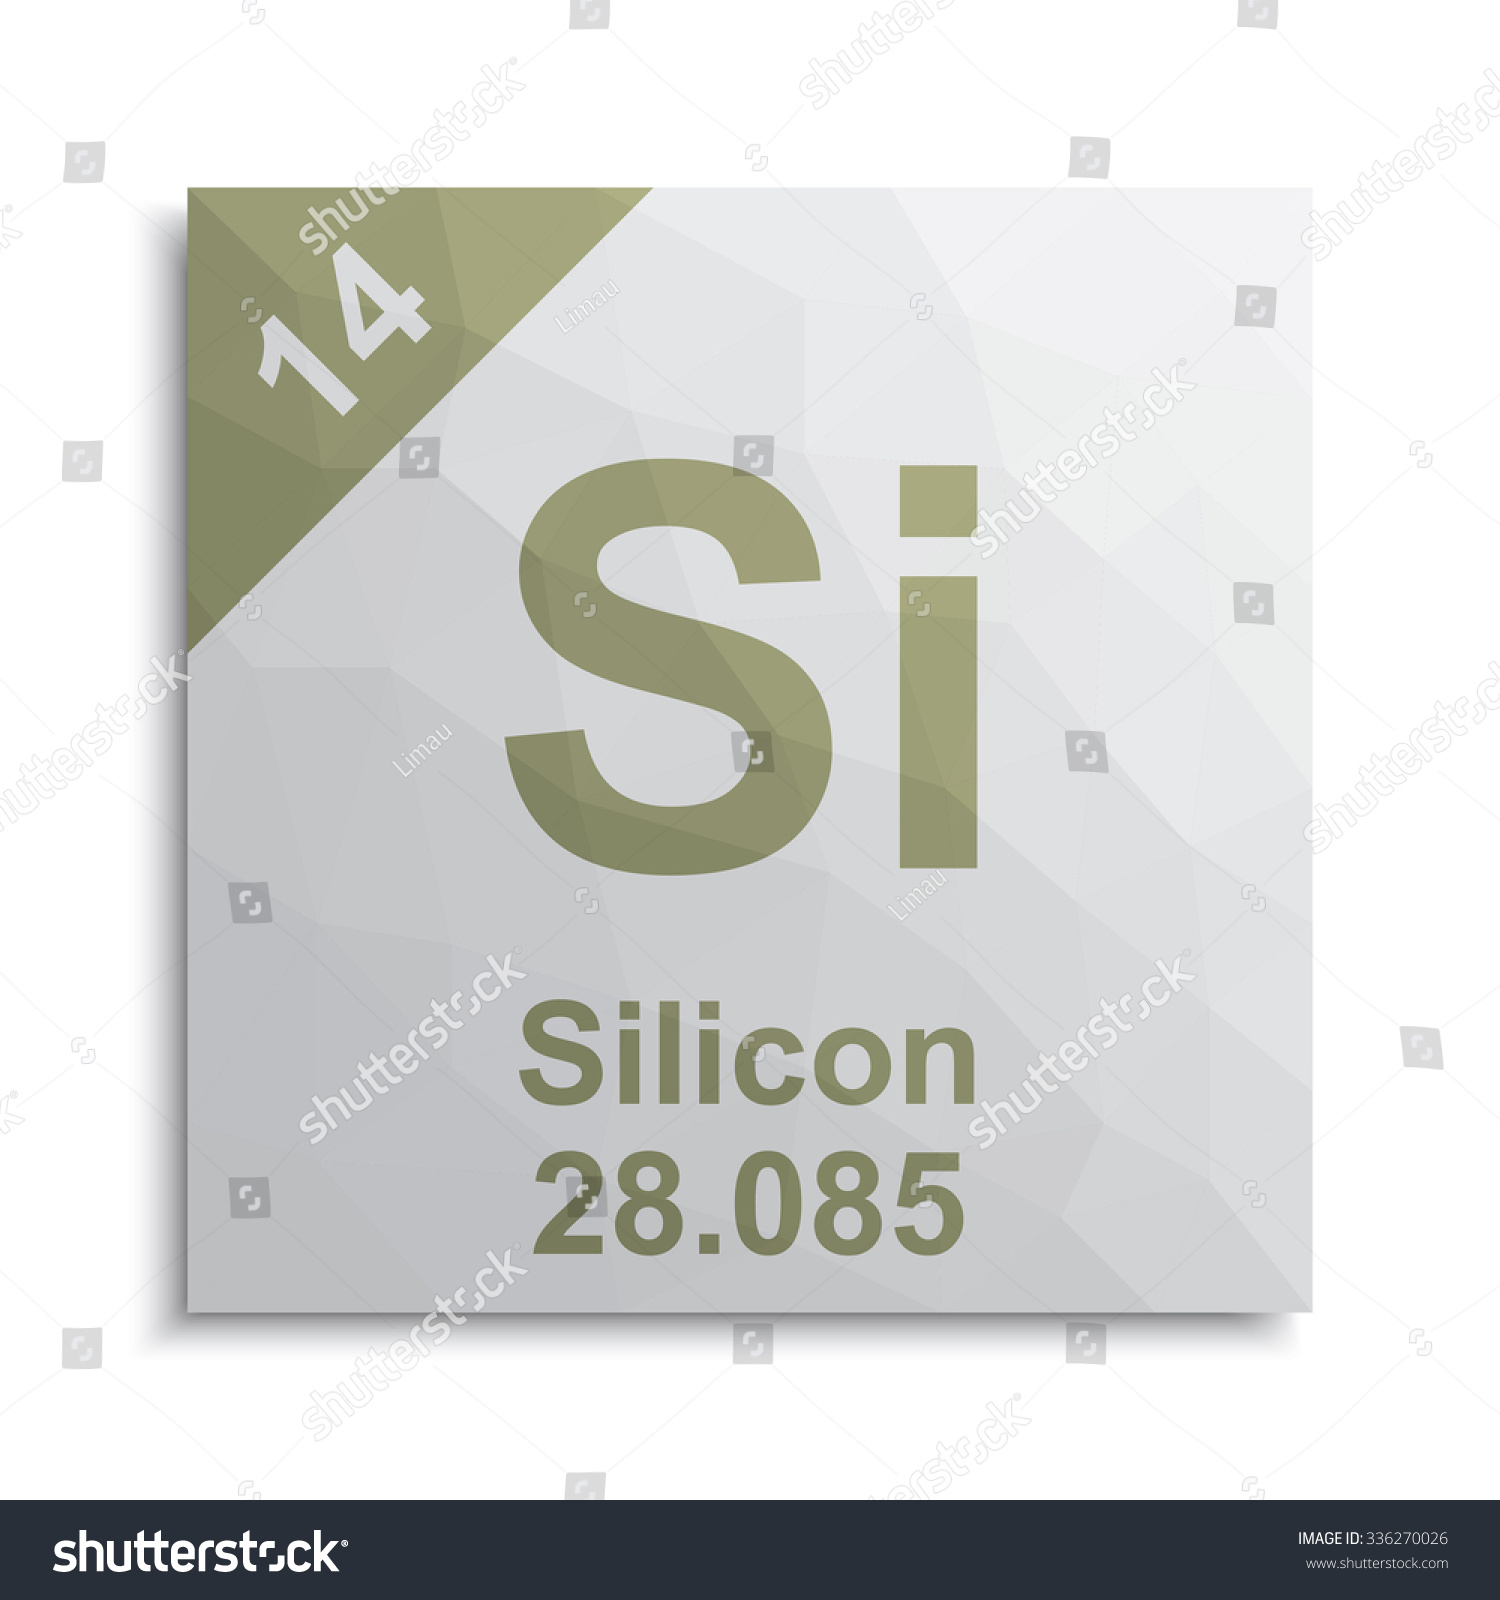 Silicon element periodic table image collections periodic table silicon element periodic table gallery periodic table images silicon element periodic table choice image periodic table gamestrikefo Image collections